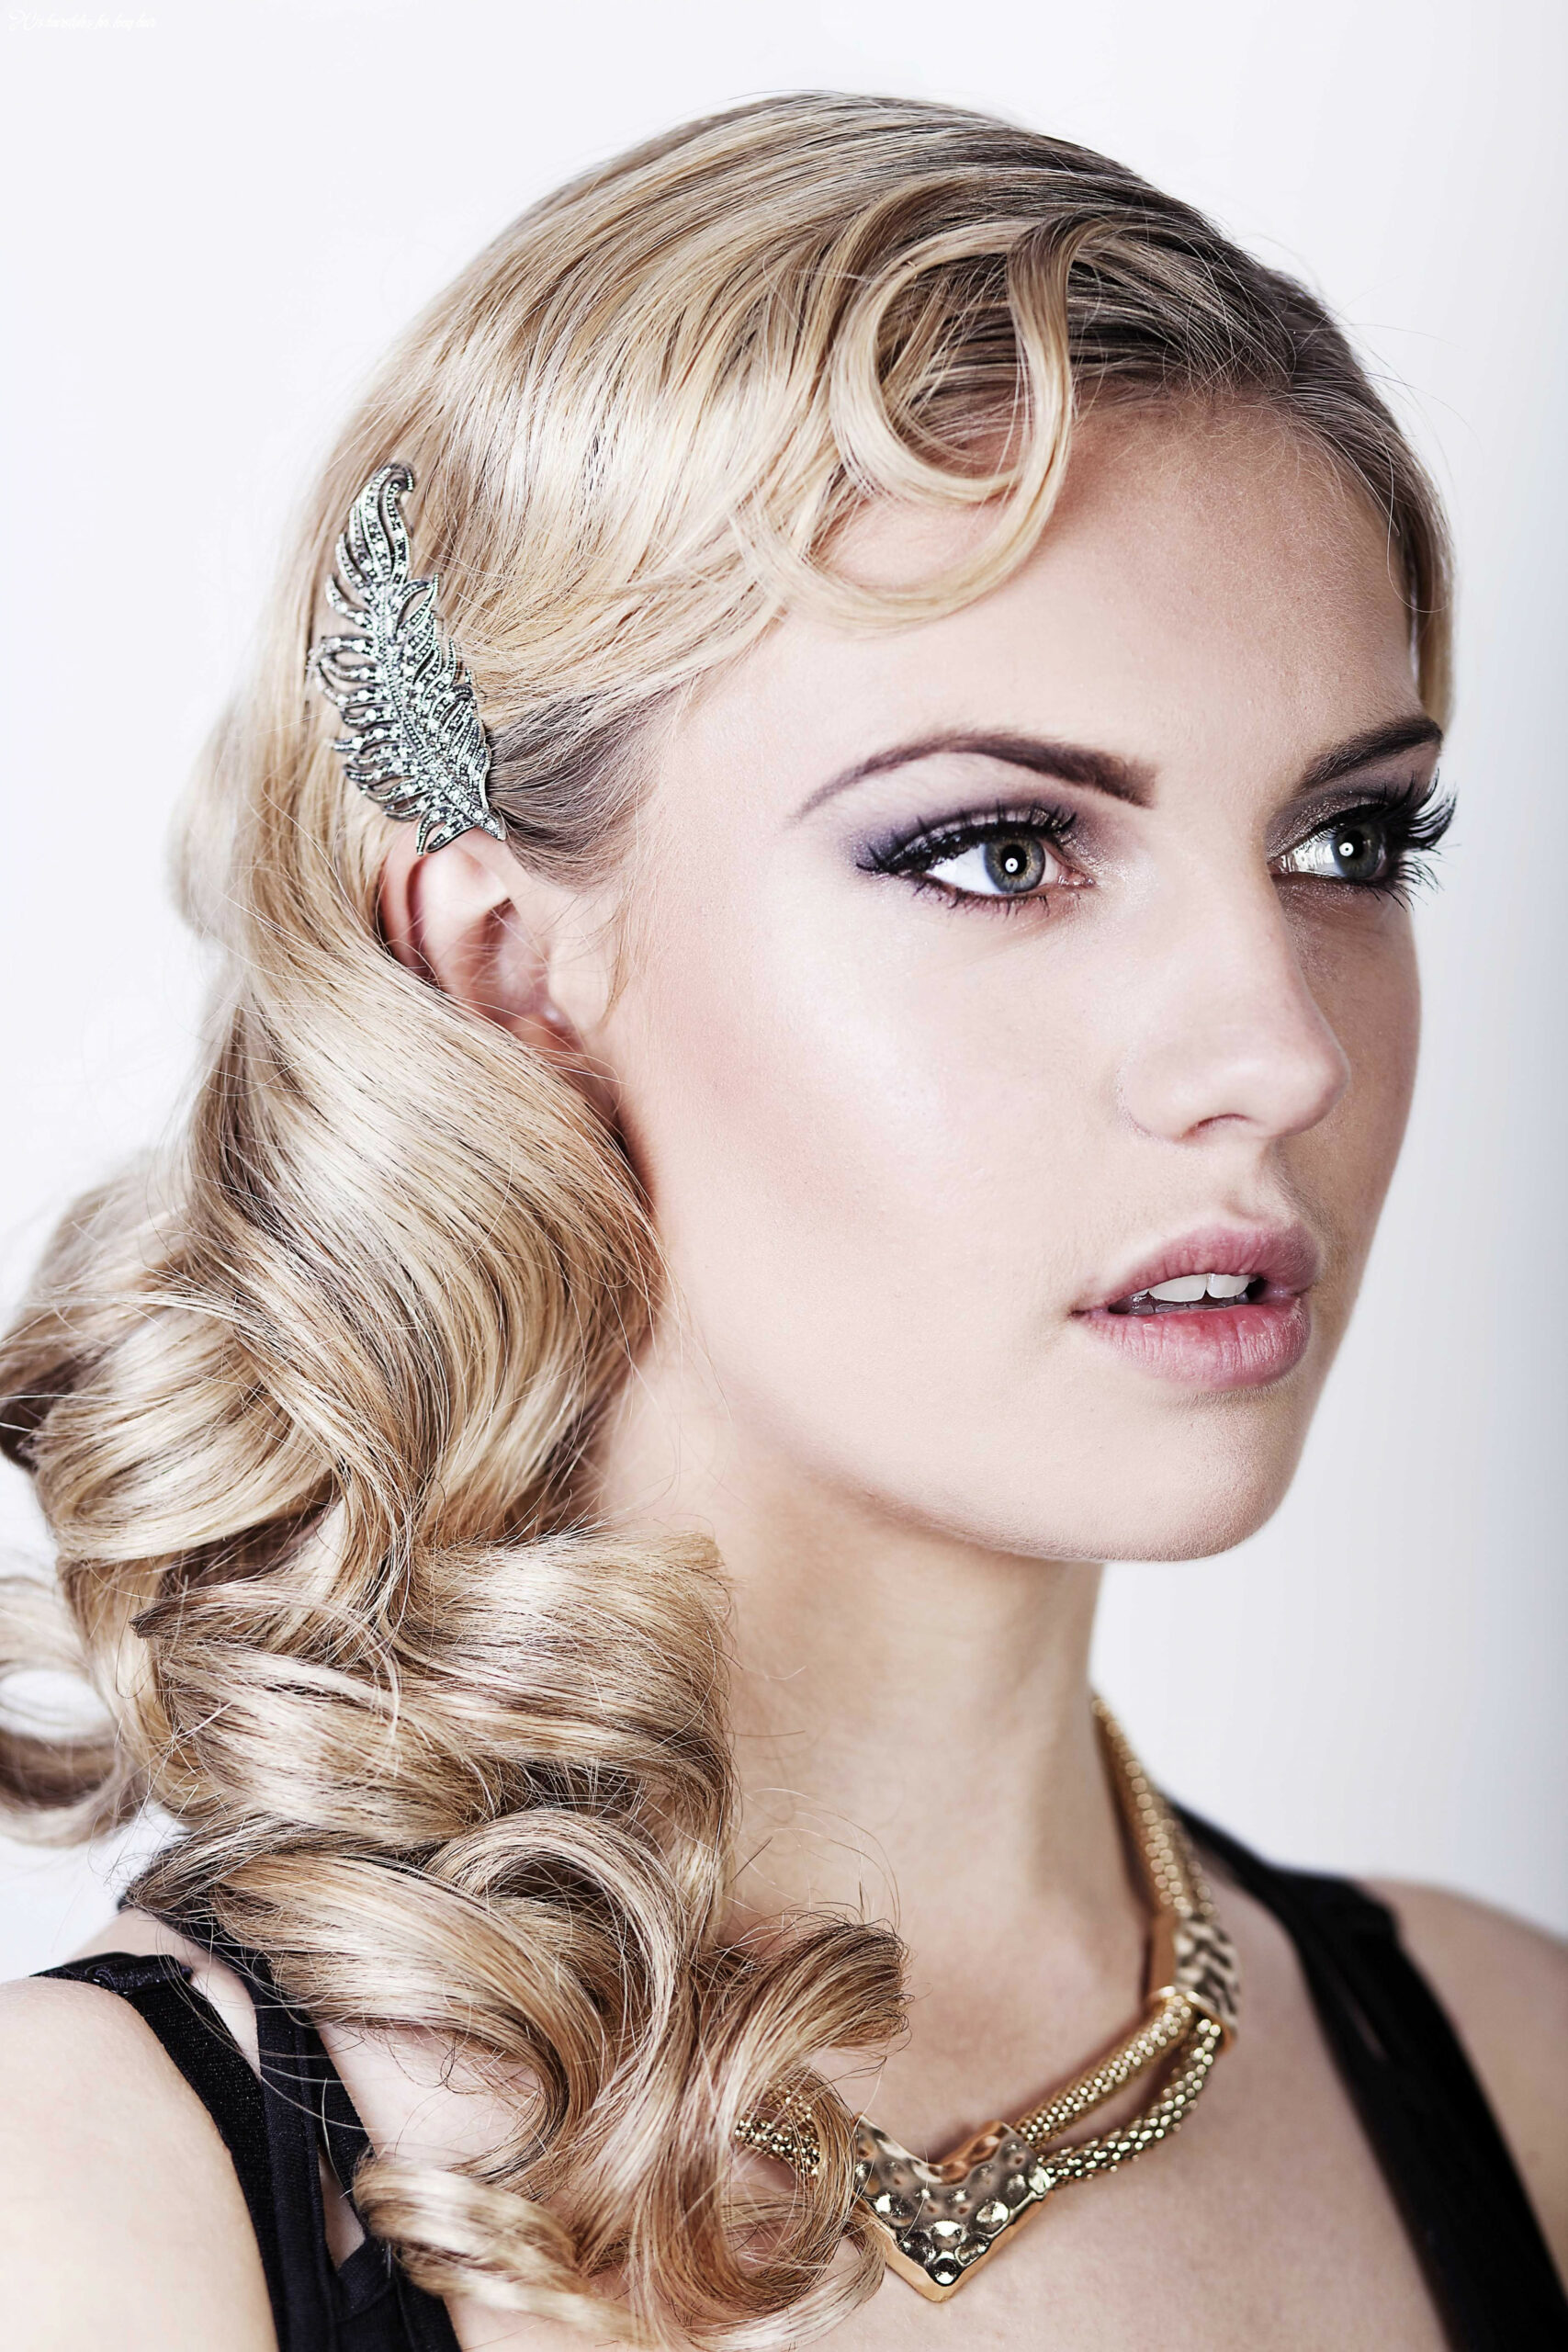 Friday feature} seriously great gatsby 9s inspired hair & make up